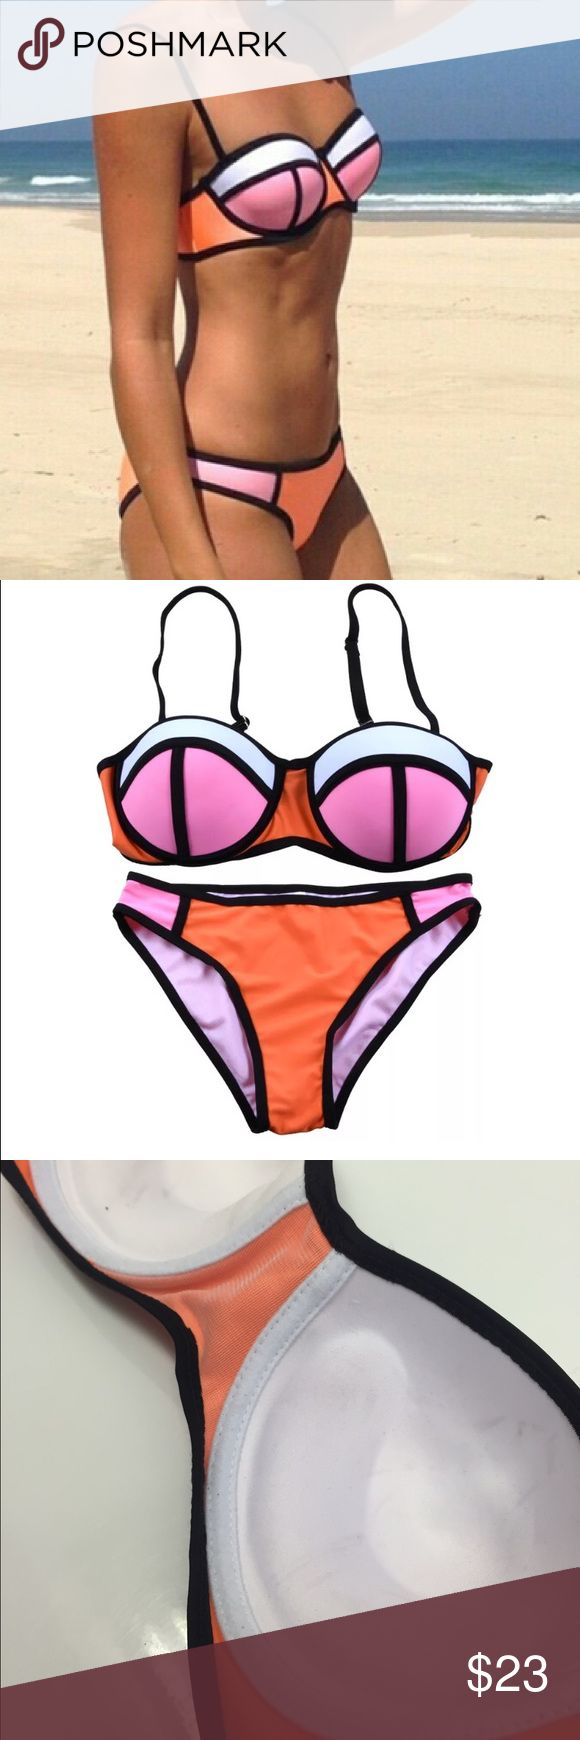 Pink Orange White Balconet Bikini Set New, no tags S: bottoms XS or XXS (00), top B, maybe C (I'm a 32D and it's a bit small) M: bottoms 0-2, top C-D (It fits me). L: bottoms 0-3, top D - maybe DD (its too big on me but it's so molded you can't really tell)  Cup is molded and does not lay flat so if you are pretty flat chested it might be a bit big.  This is like the triangle balconnet poppy peach soda but it's not triangl brand and not neoprene. Top has push up like the 3rd photo shows…